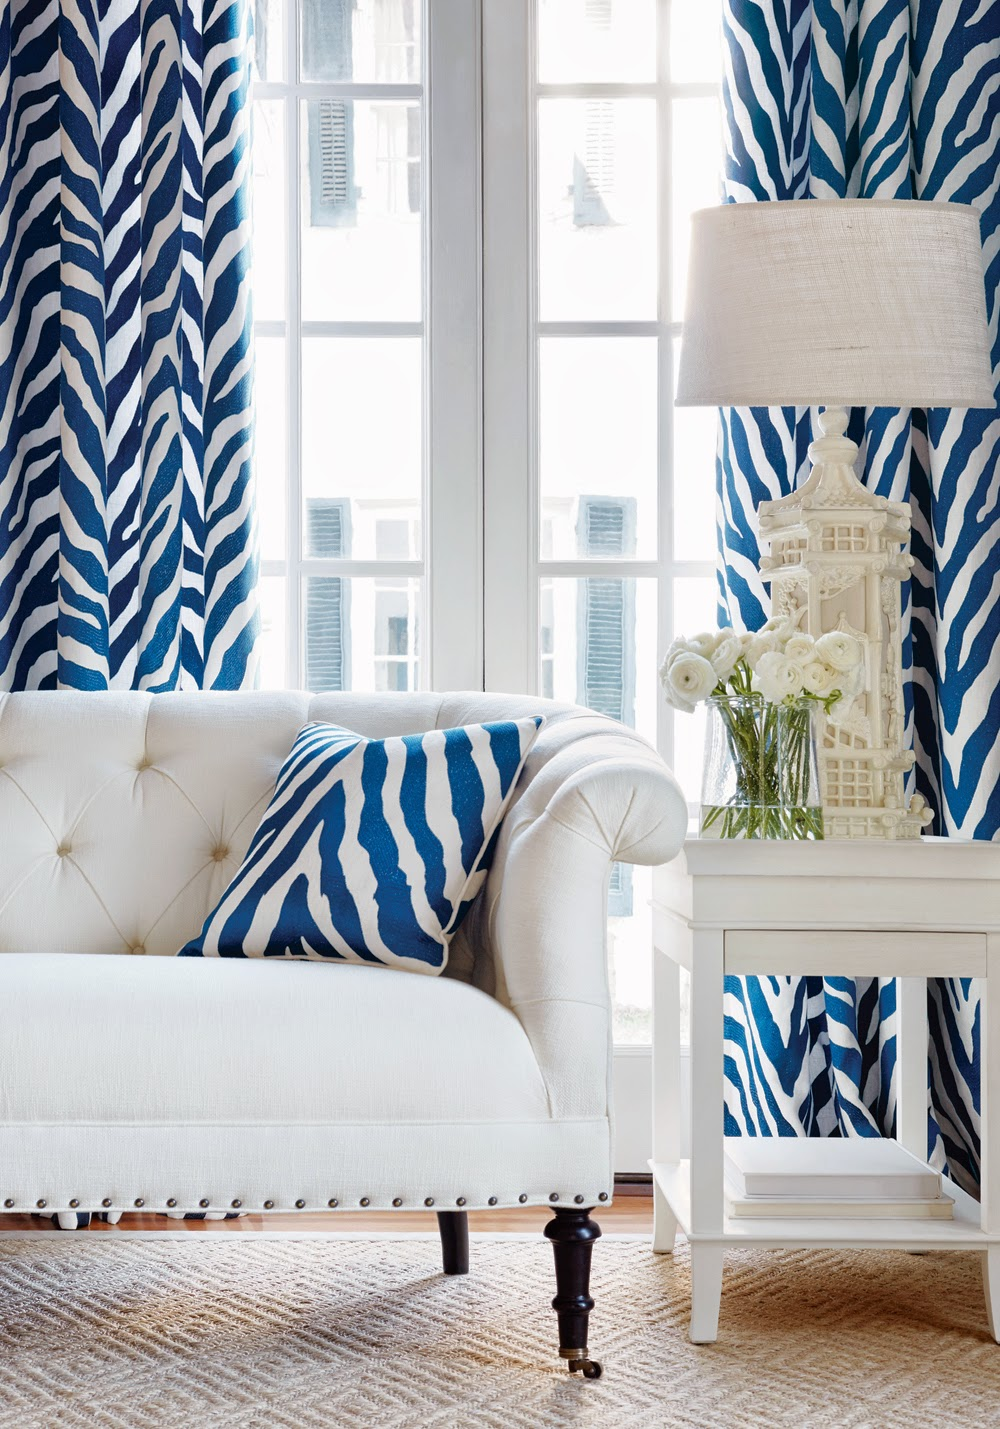 http://www.thibautdesign.com/collection/high_res.php?patternID=1541&productID=10797